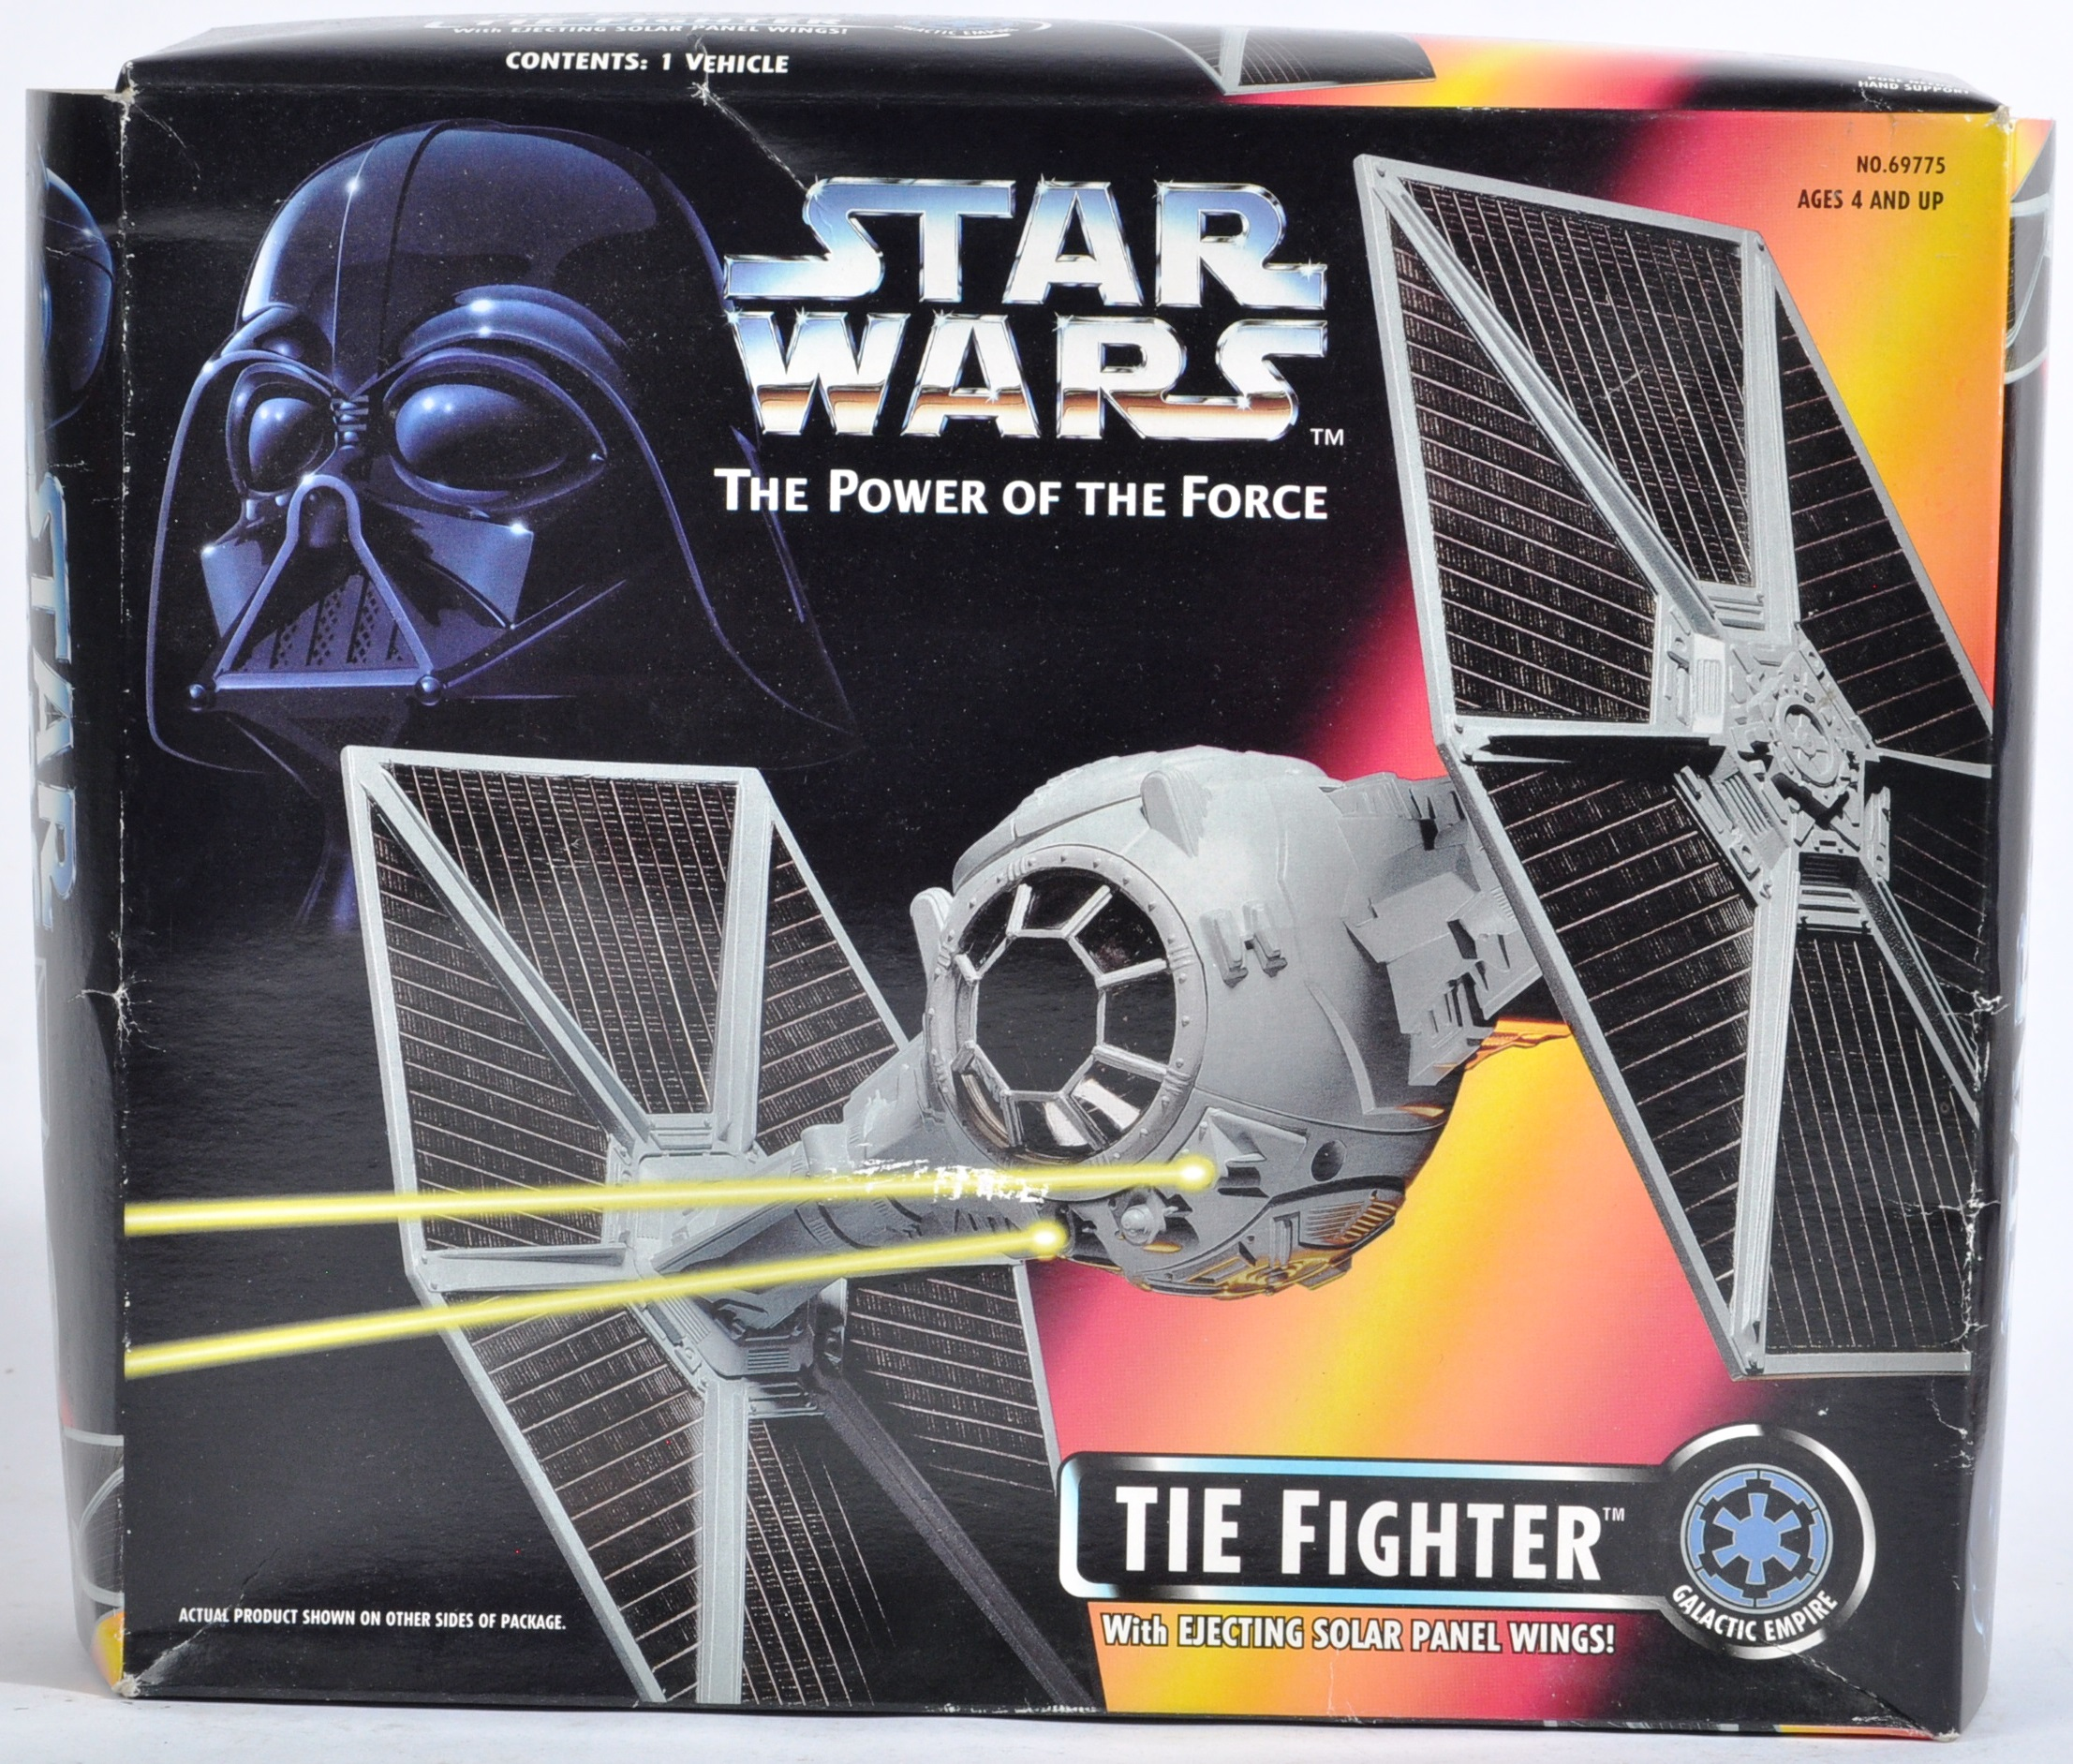 STAR WARS - COLLECTION OF KENNER POWER OF THE FORCES - Image 2 of 13